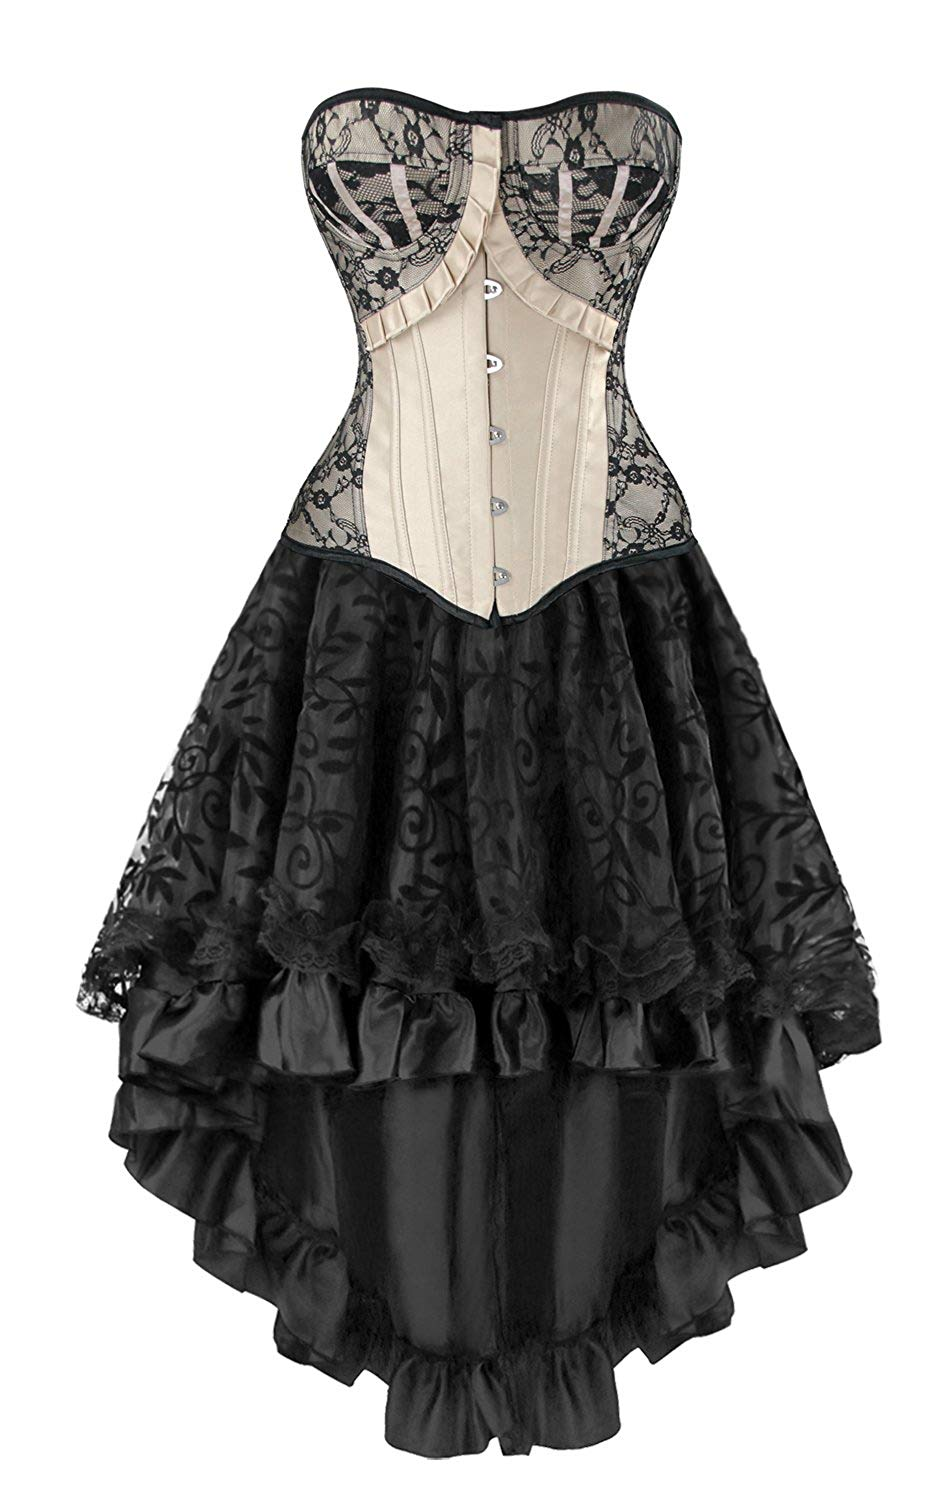 536103d880 Charmian Women s Steampunk Gothic Vintage Boned Corset with High Low Skirt